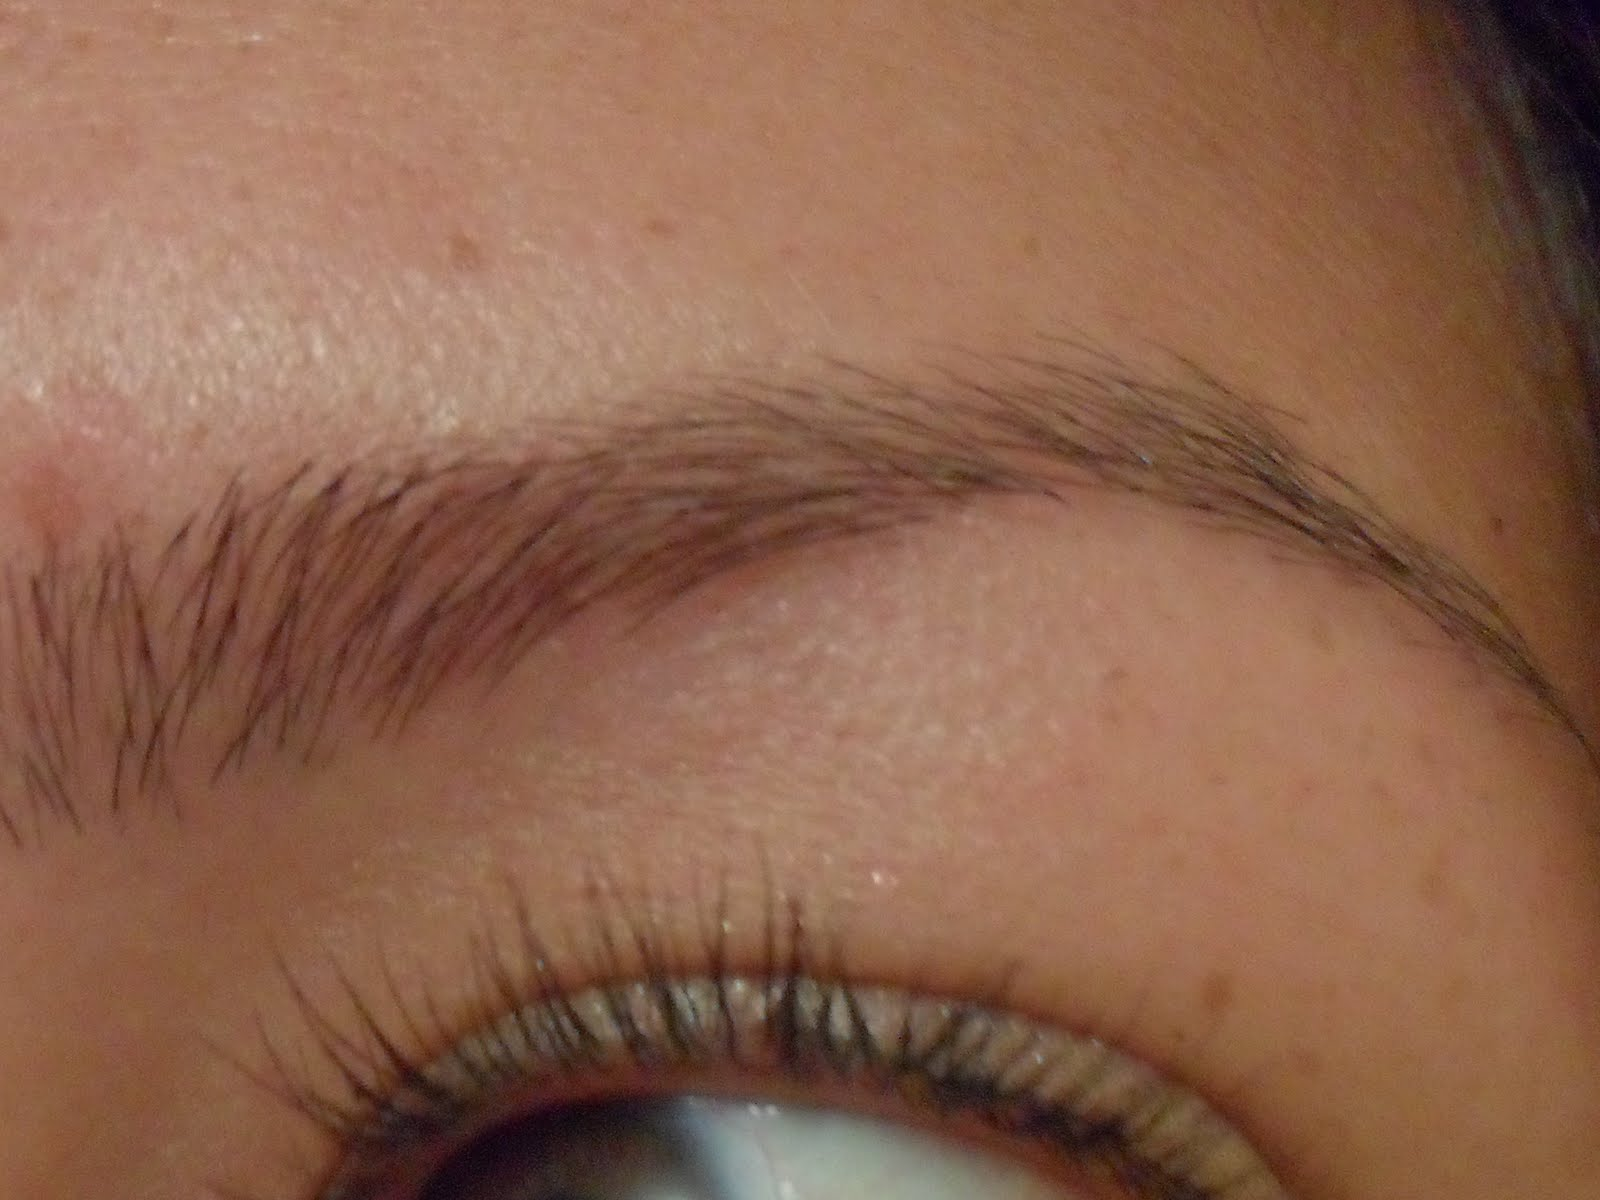 M I N N I E M A K E U P Thread Bare My Eyebrow Threading Experience